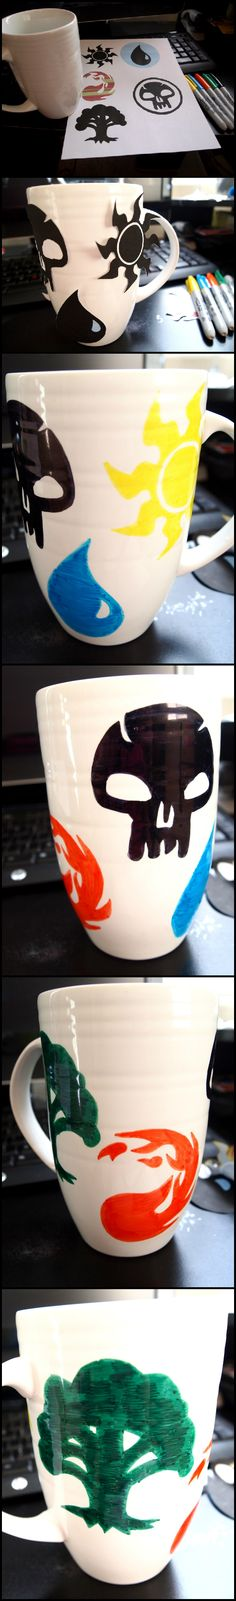 Magic The Gathering coffee mug. I want this to be my first thrown mug...